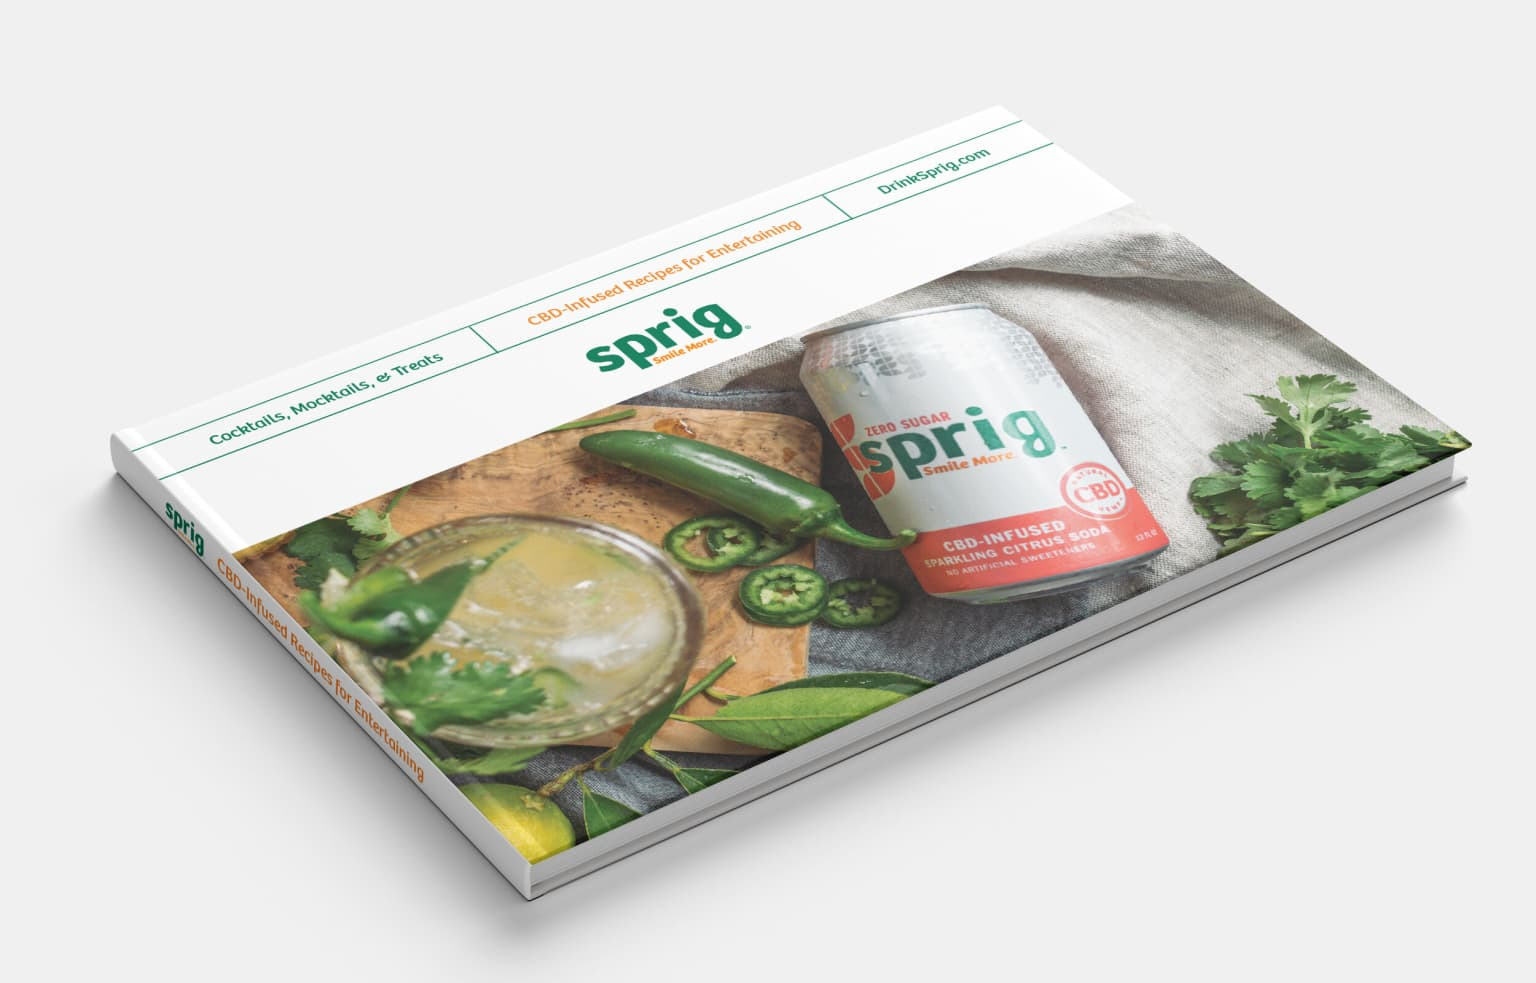 Sprig Soda CBD Cocktail Book